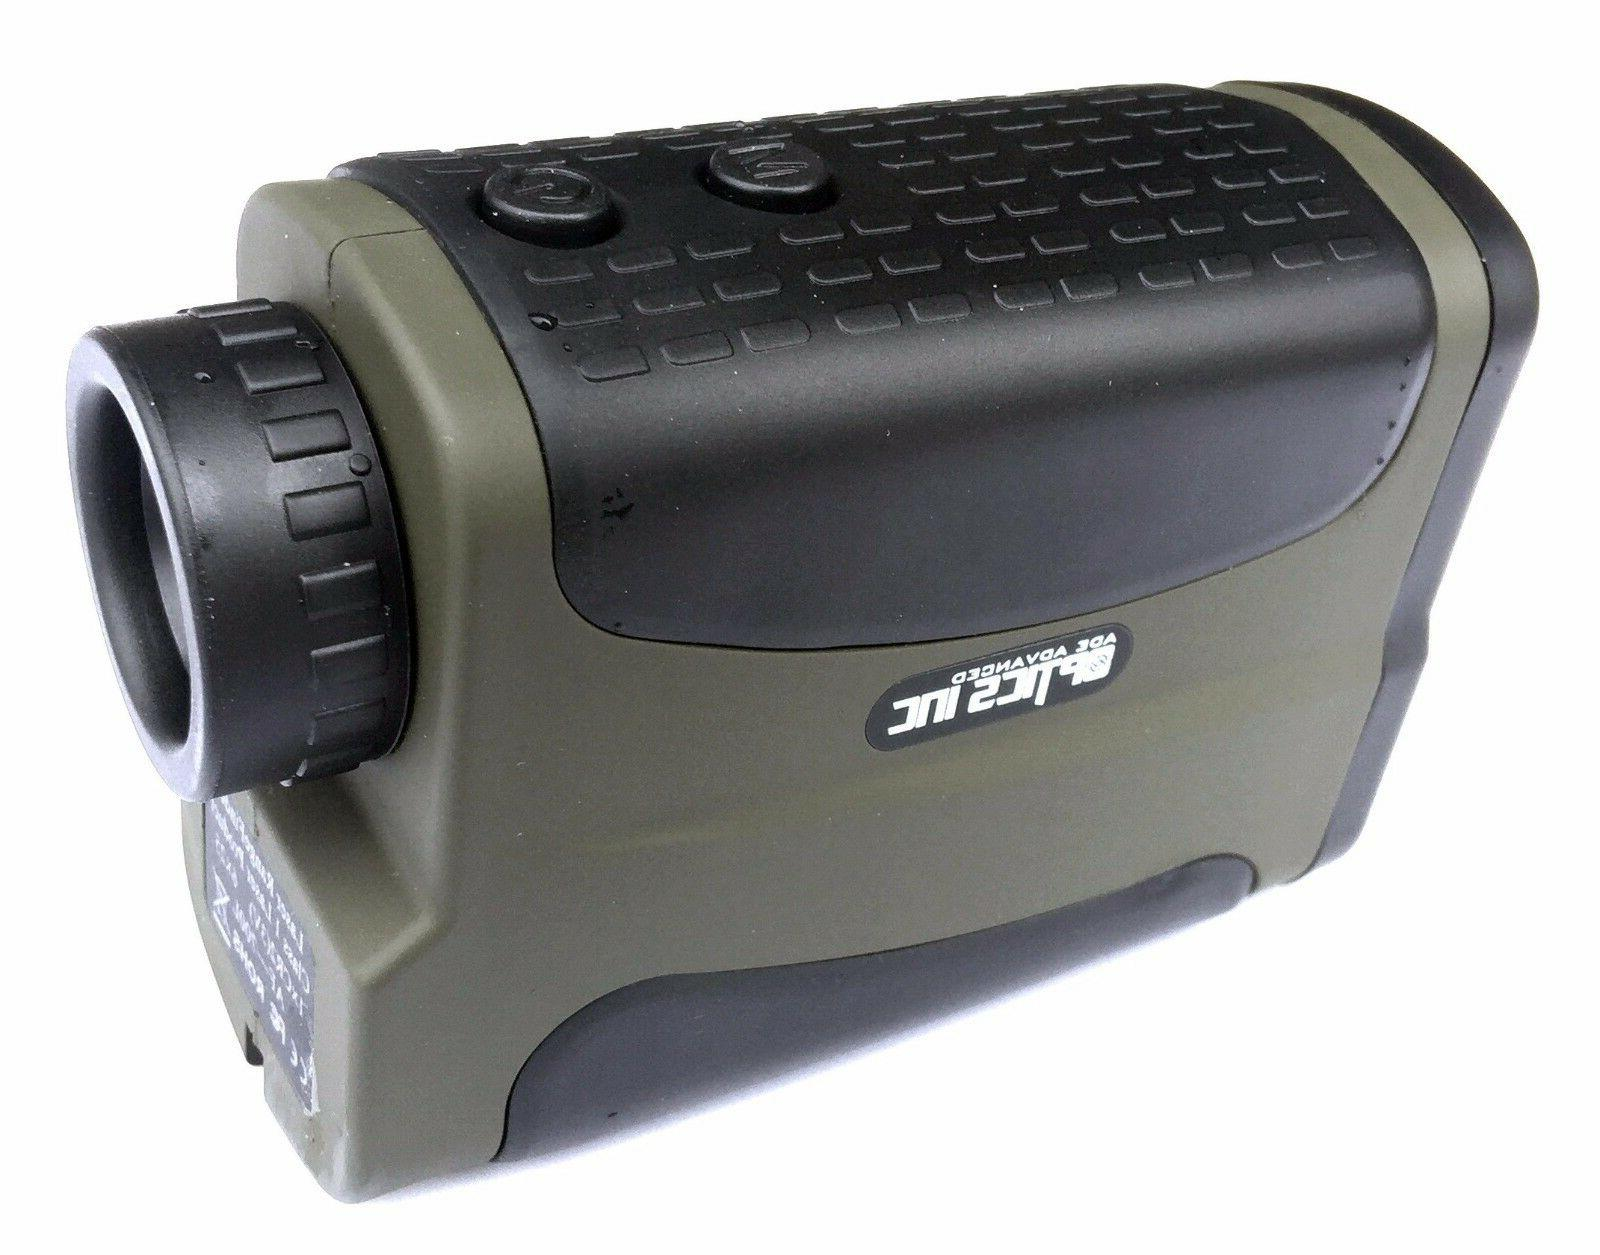 700 Golf Range Finder Scope Flag Scope OD